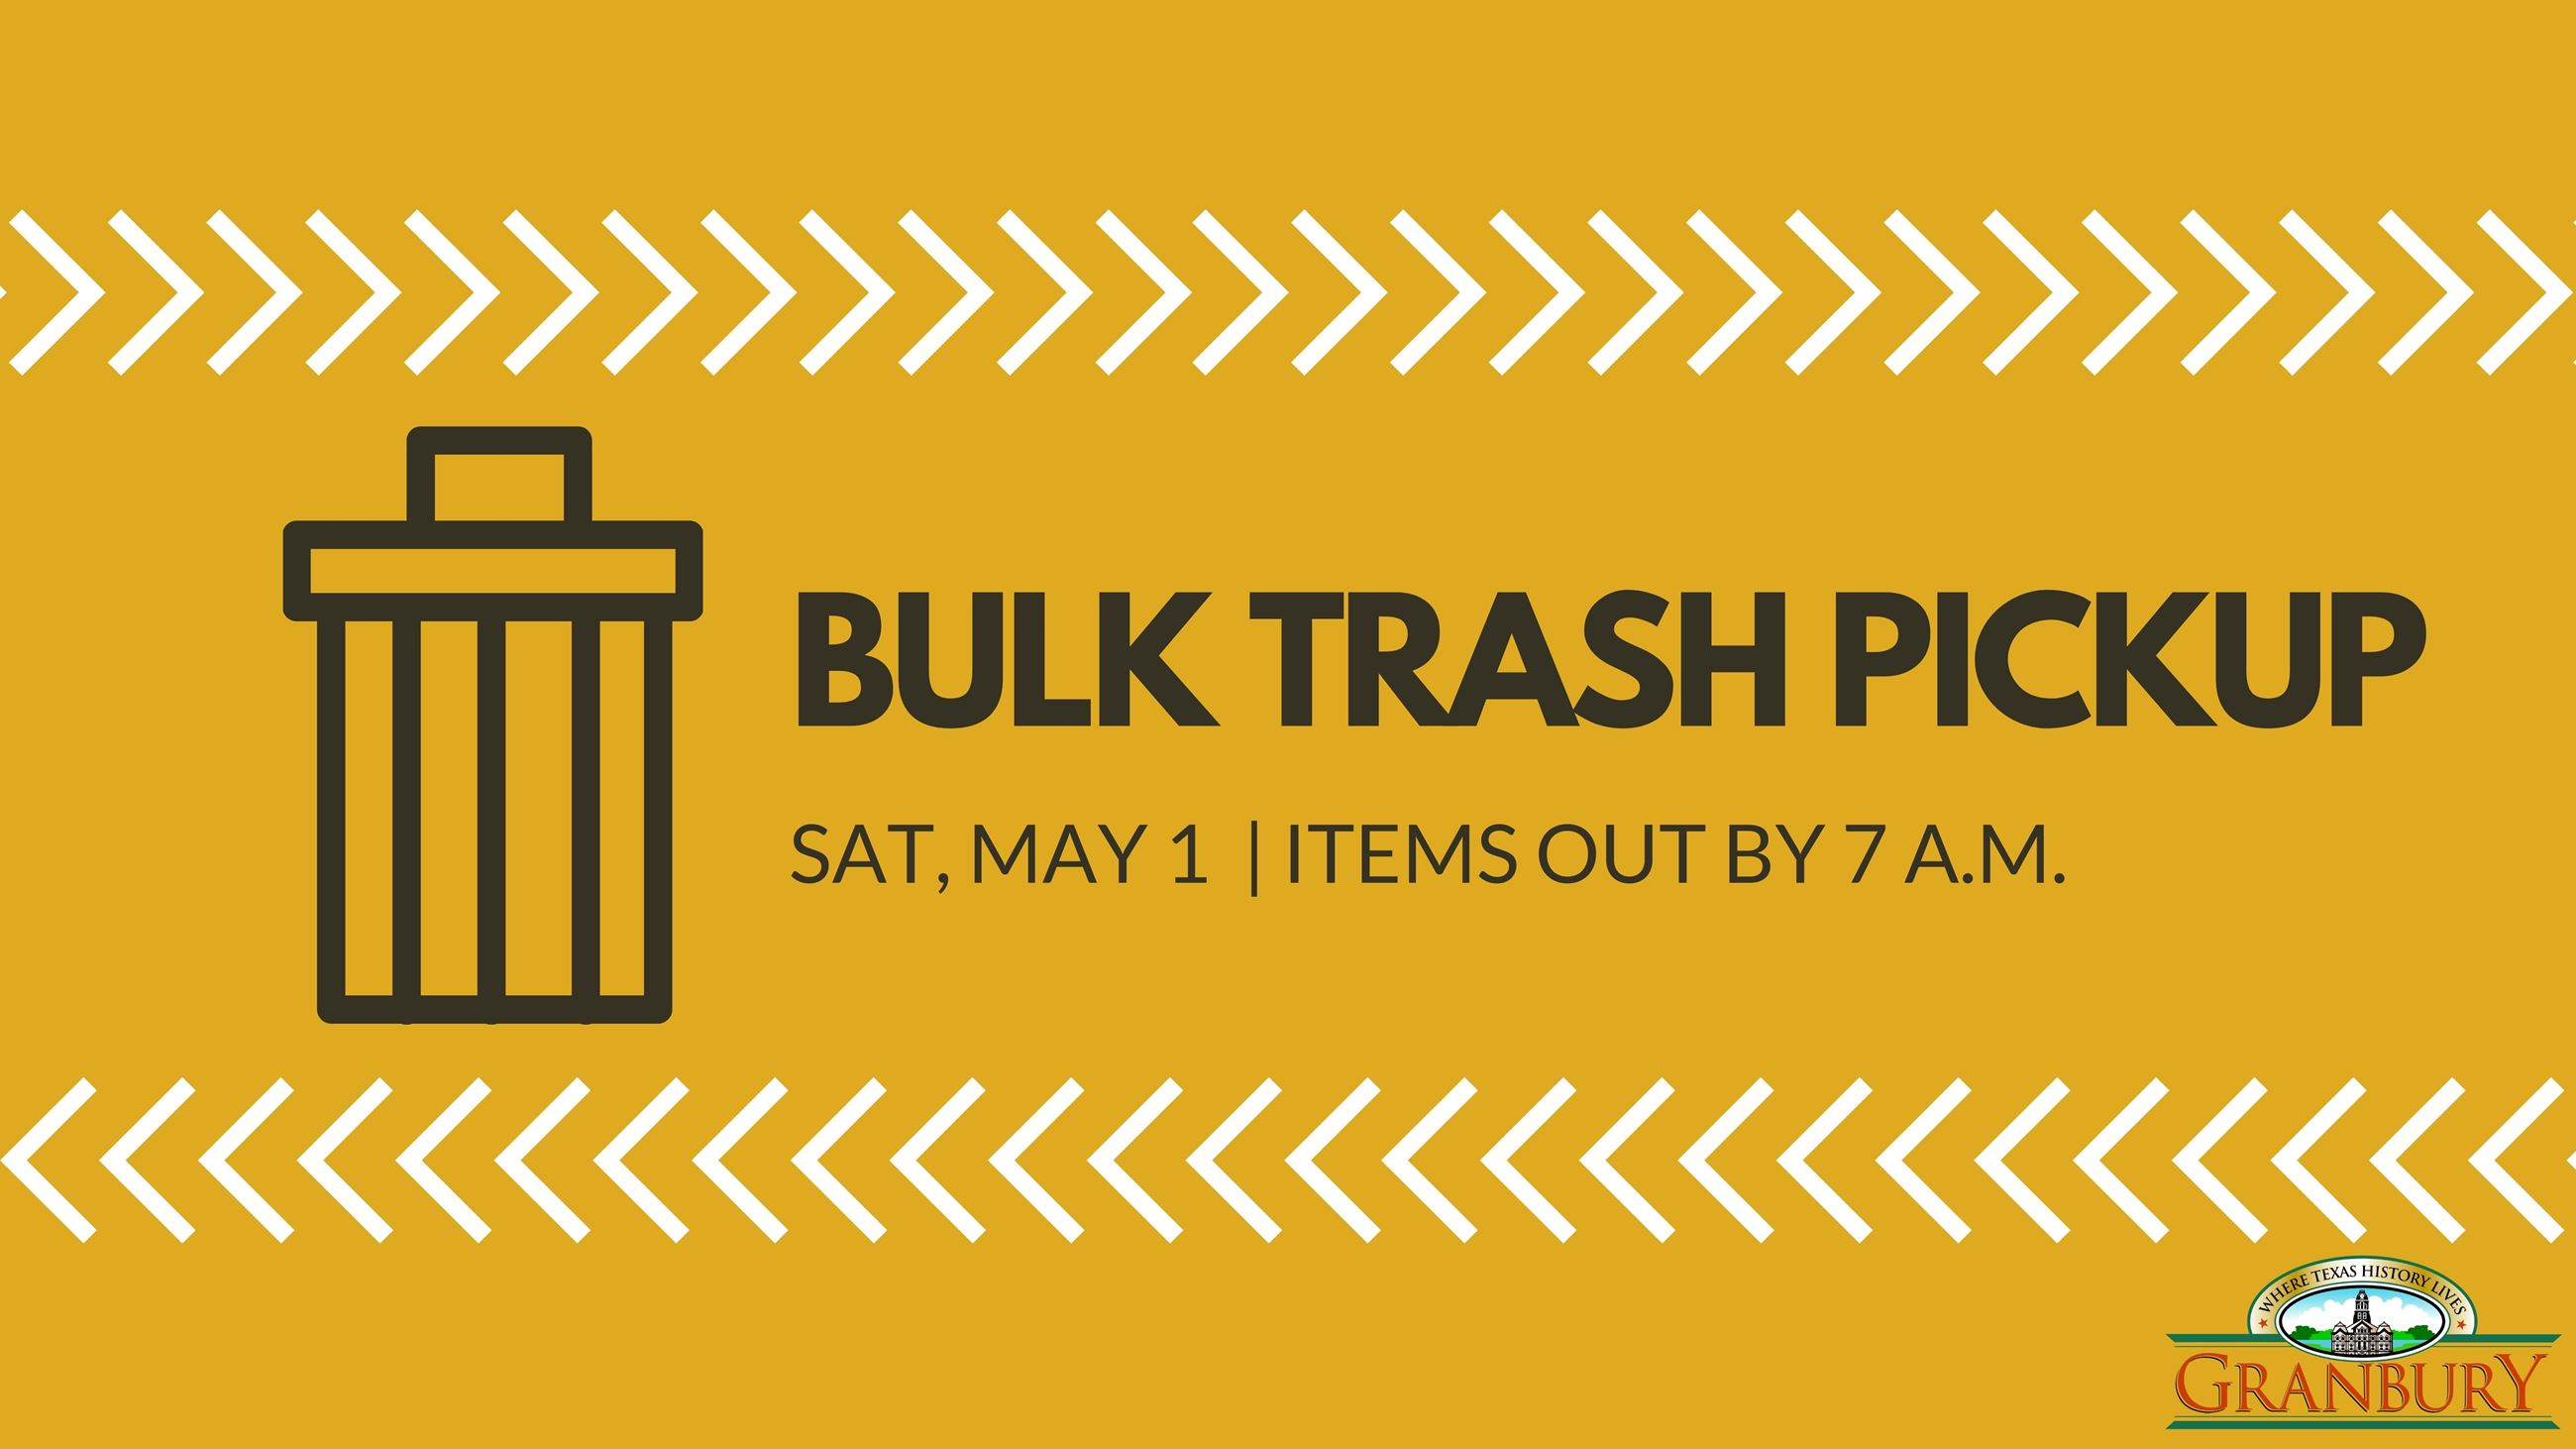 Bulk trash pickup is Saturday, April 11. Items out by 7 a.m. (1)